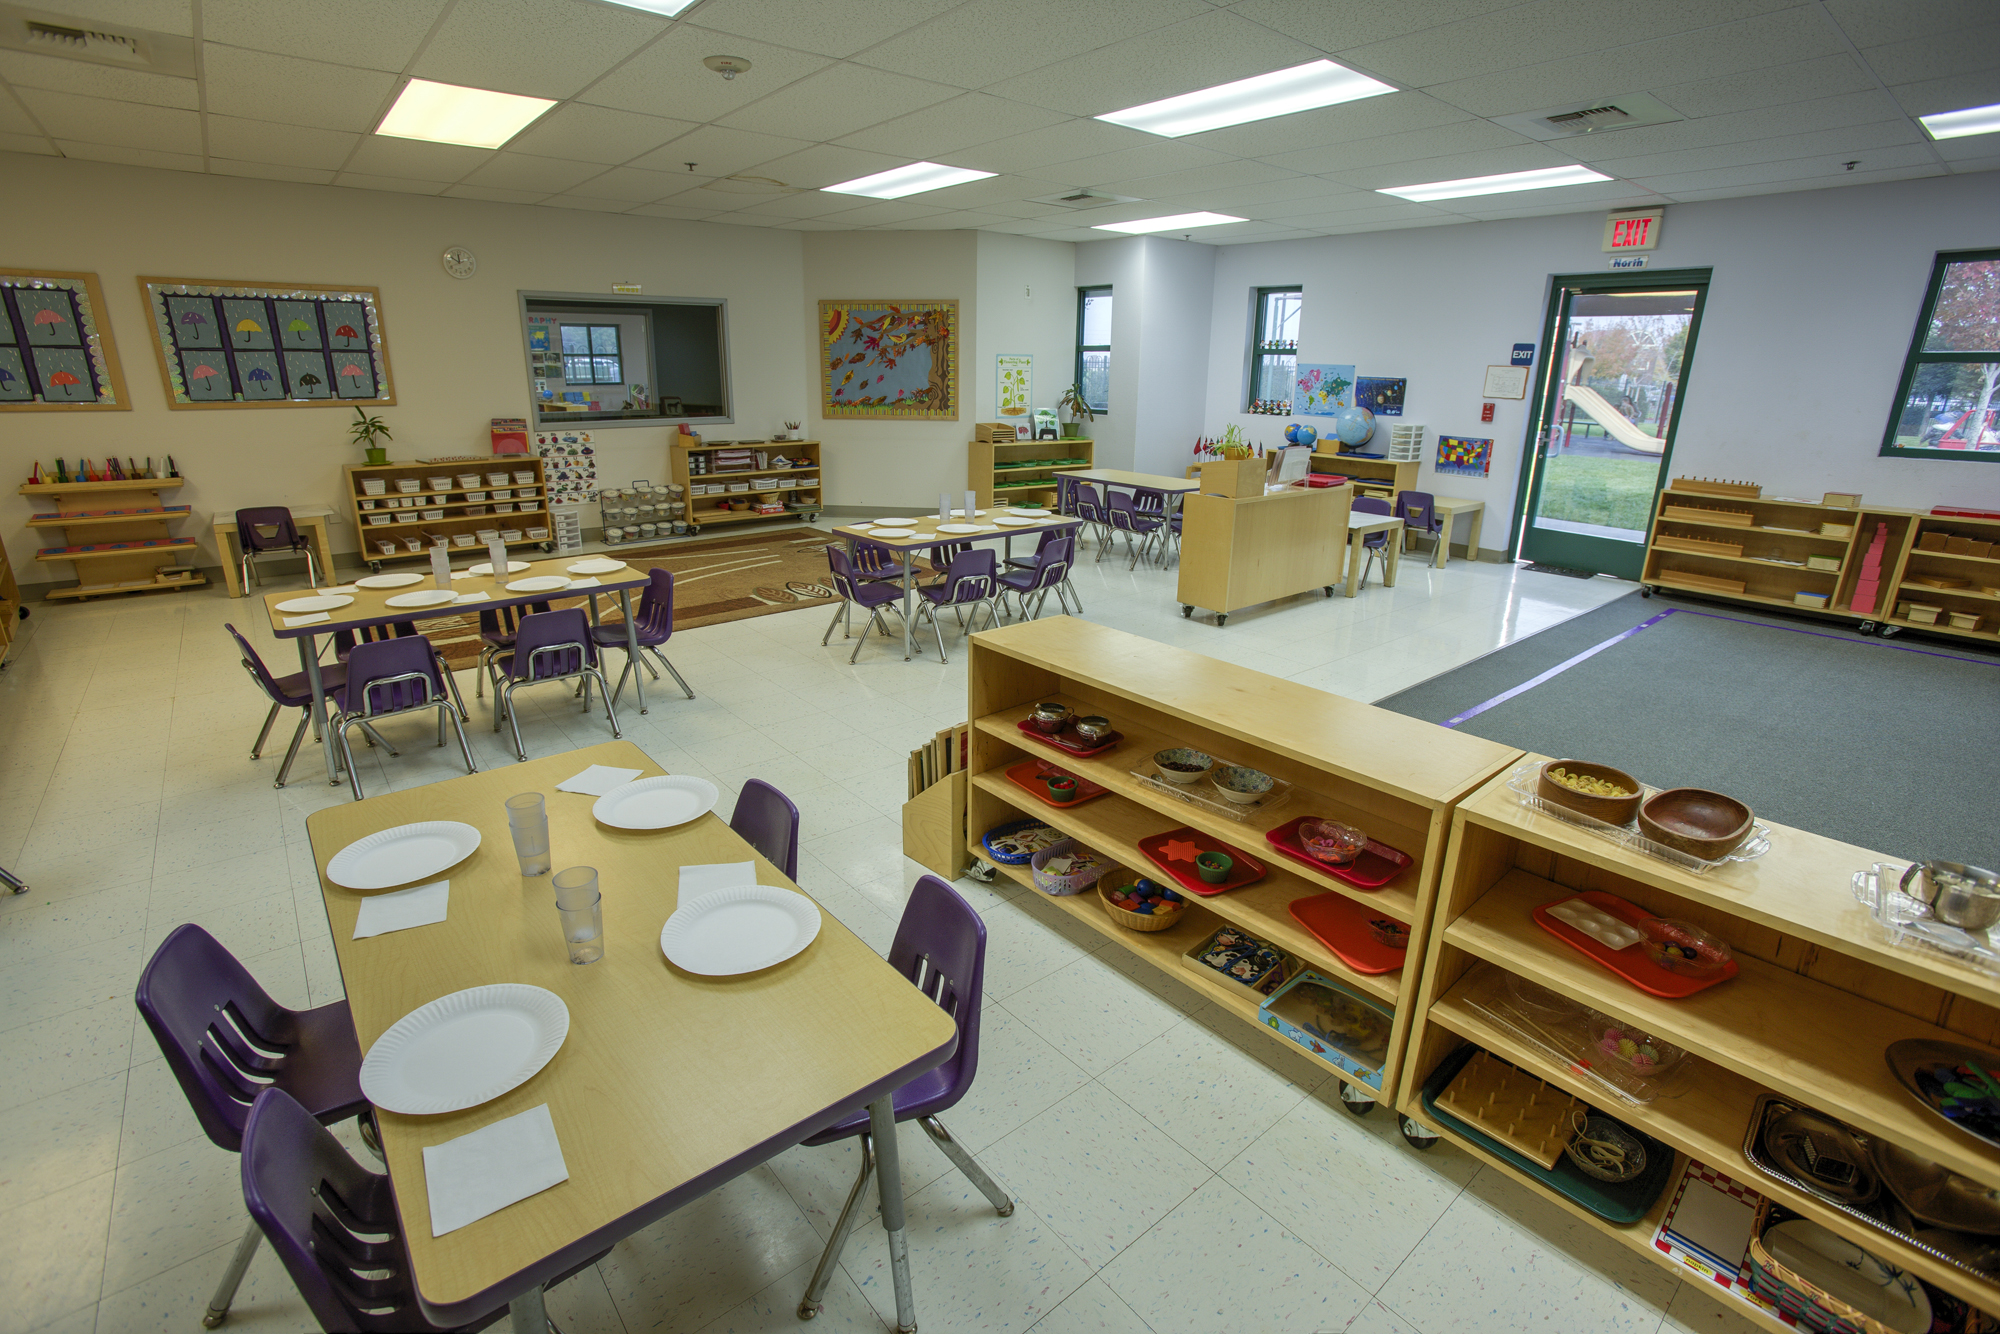 Little-Blossom-Montessori-Preschool-and-Daycare-Services-Sacramento-Natomas_15.jpg